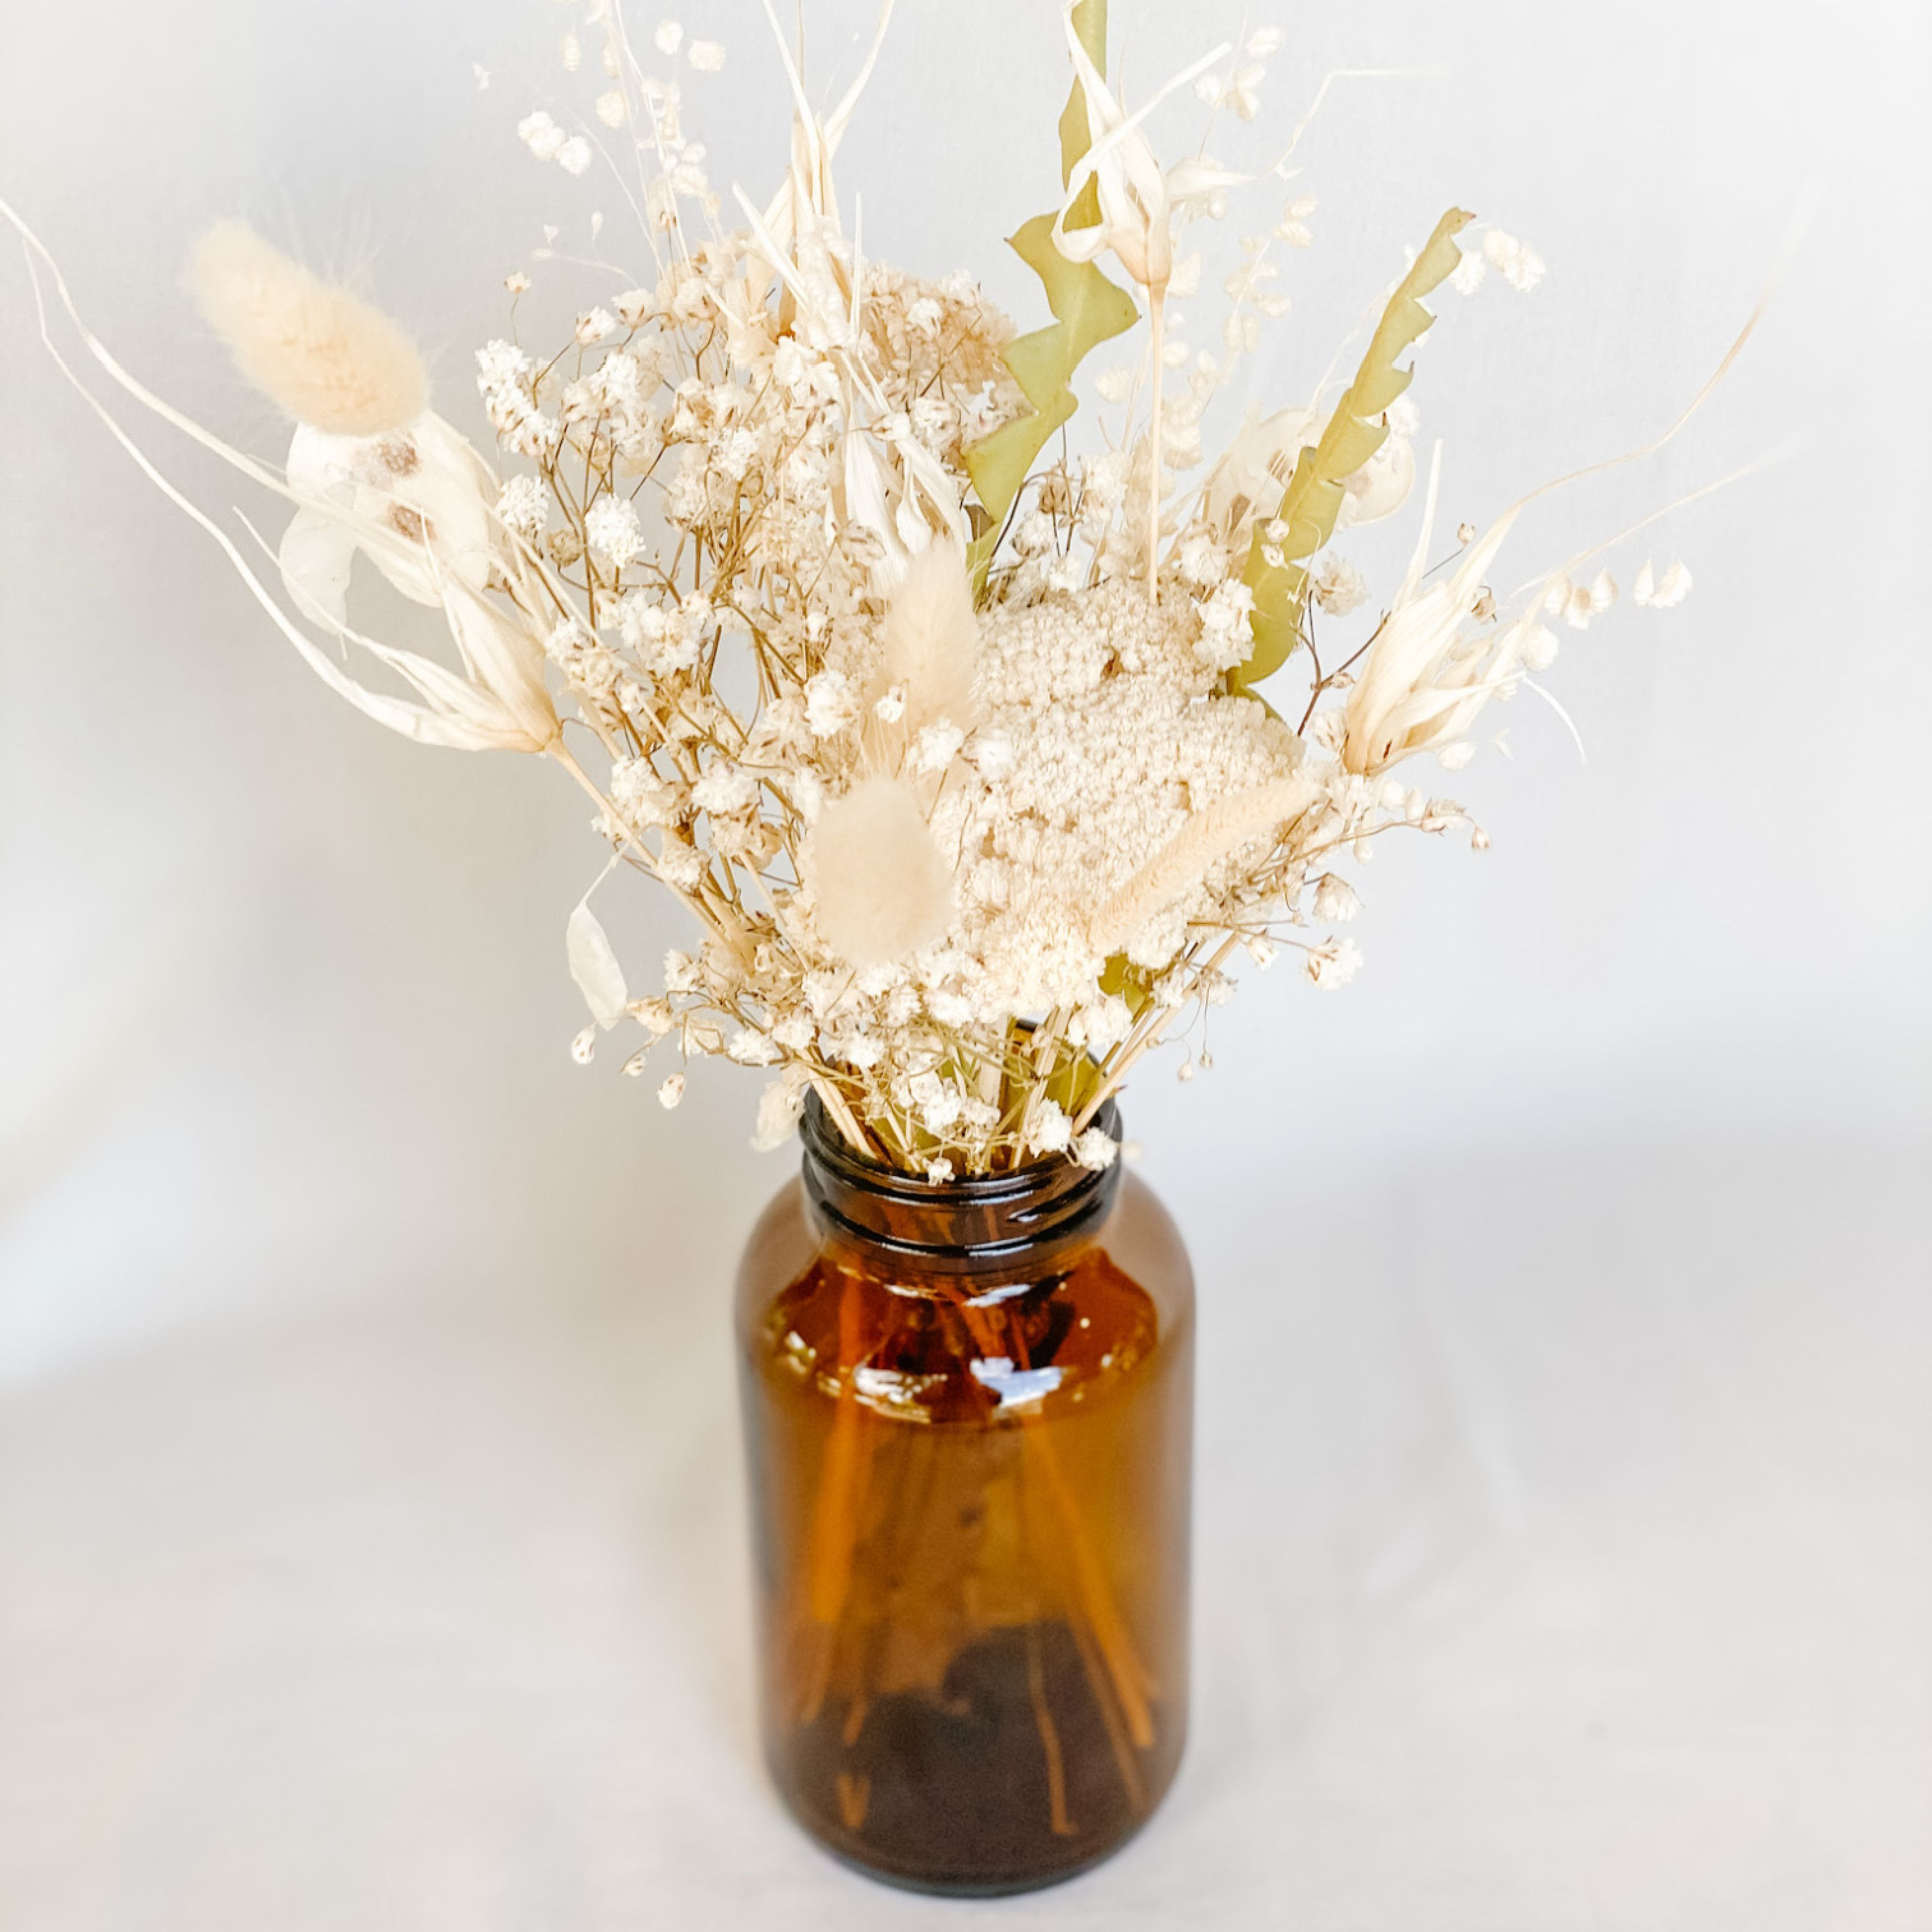 Dried Flower Apothecary Bottle Arrangement North Vancouver Florist Special Moments Flowers Gifts Ltd Local Flower Delivery North Vancouver Bc V7j 3s8